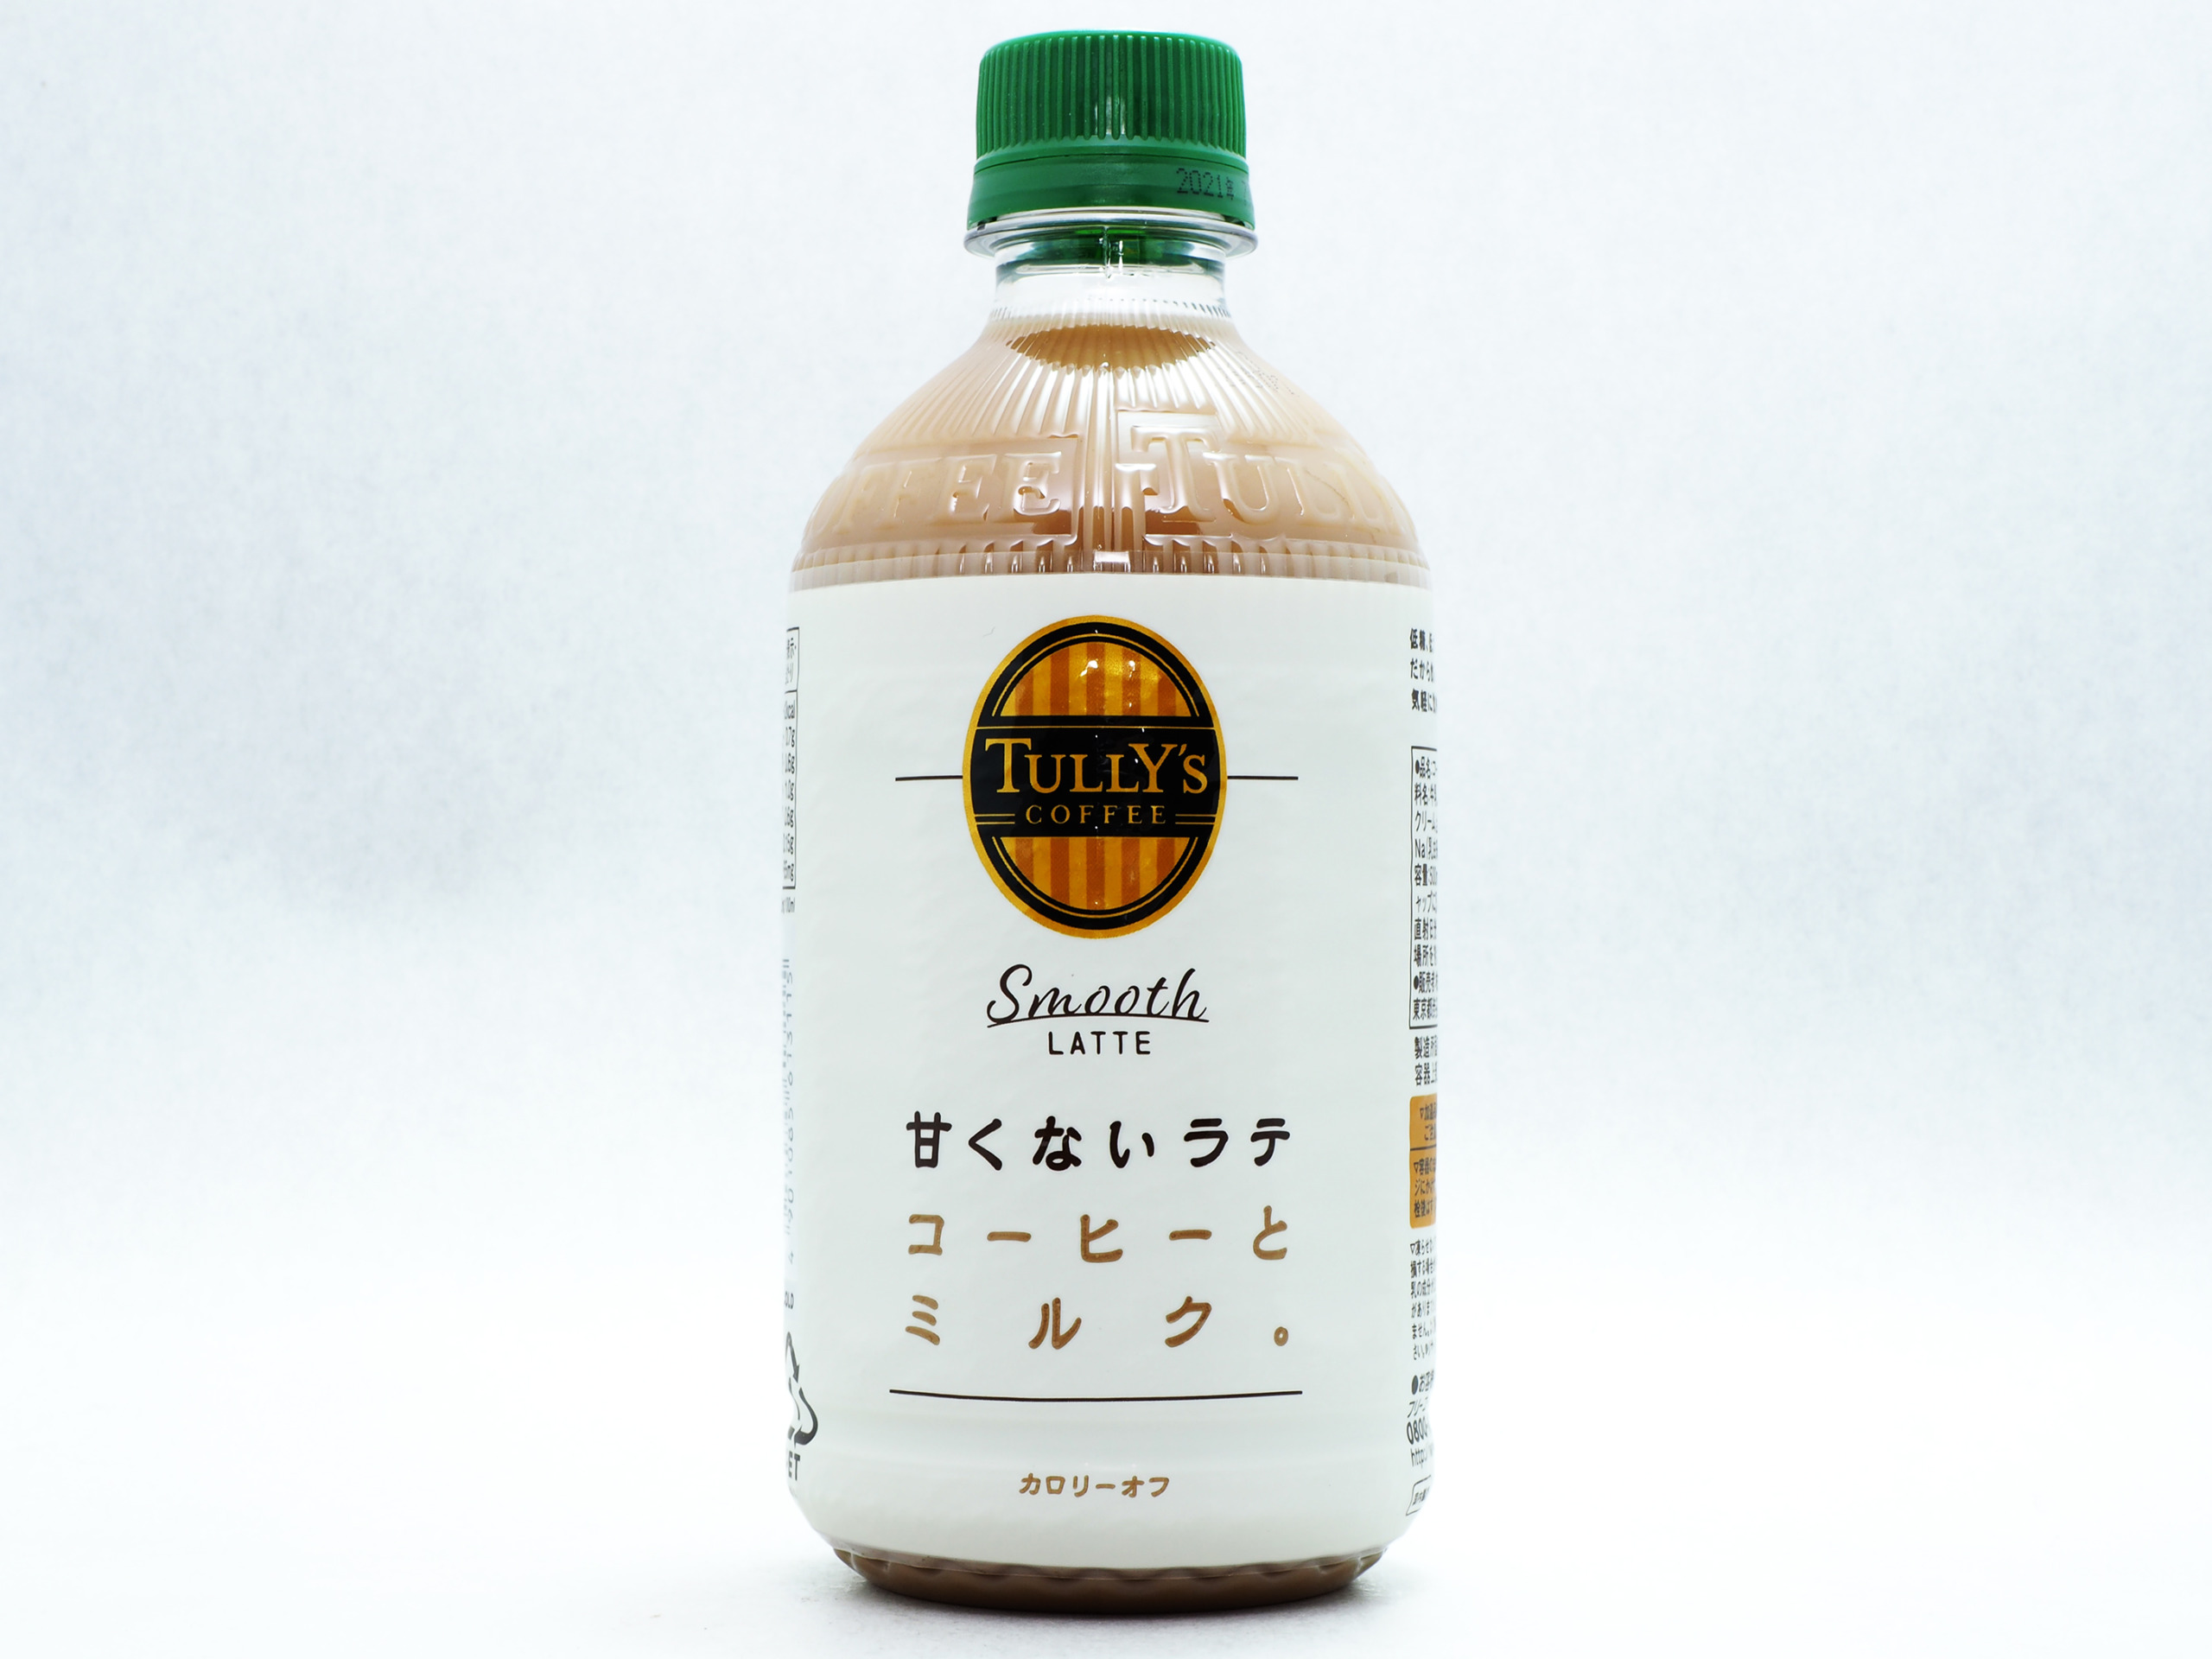 TULLY'S COFFEE Smooth LATTE 甘くないラテ PET 500ml